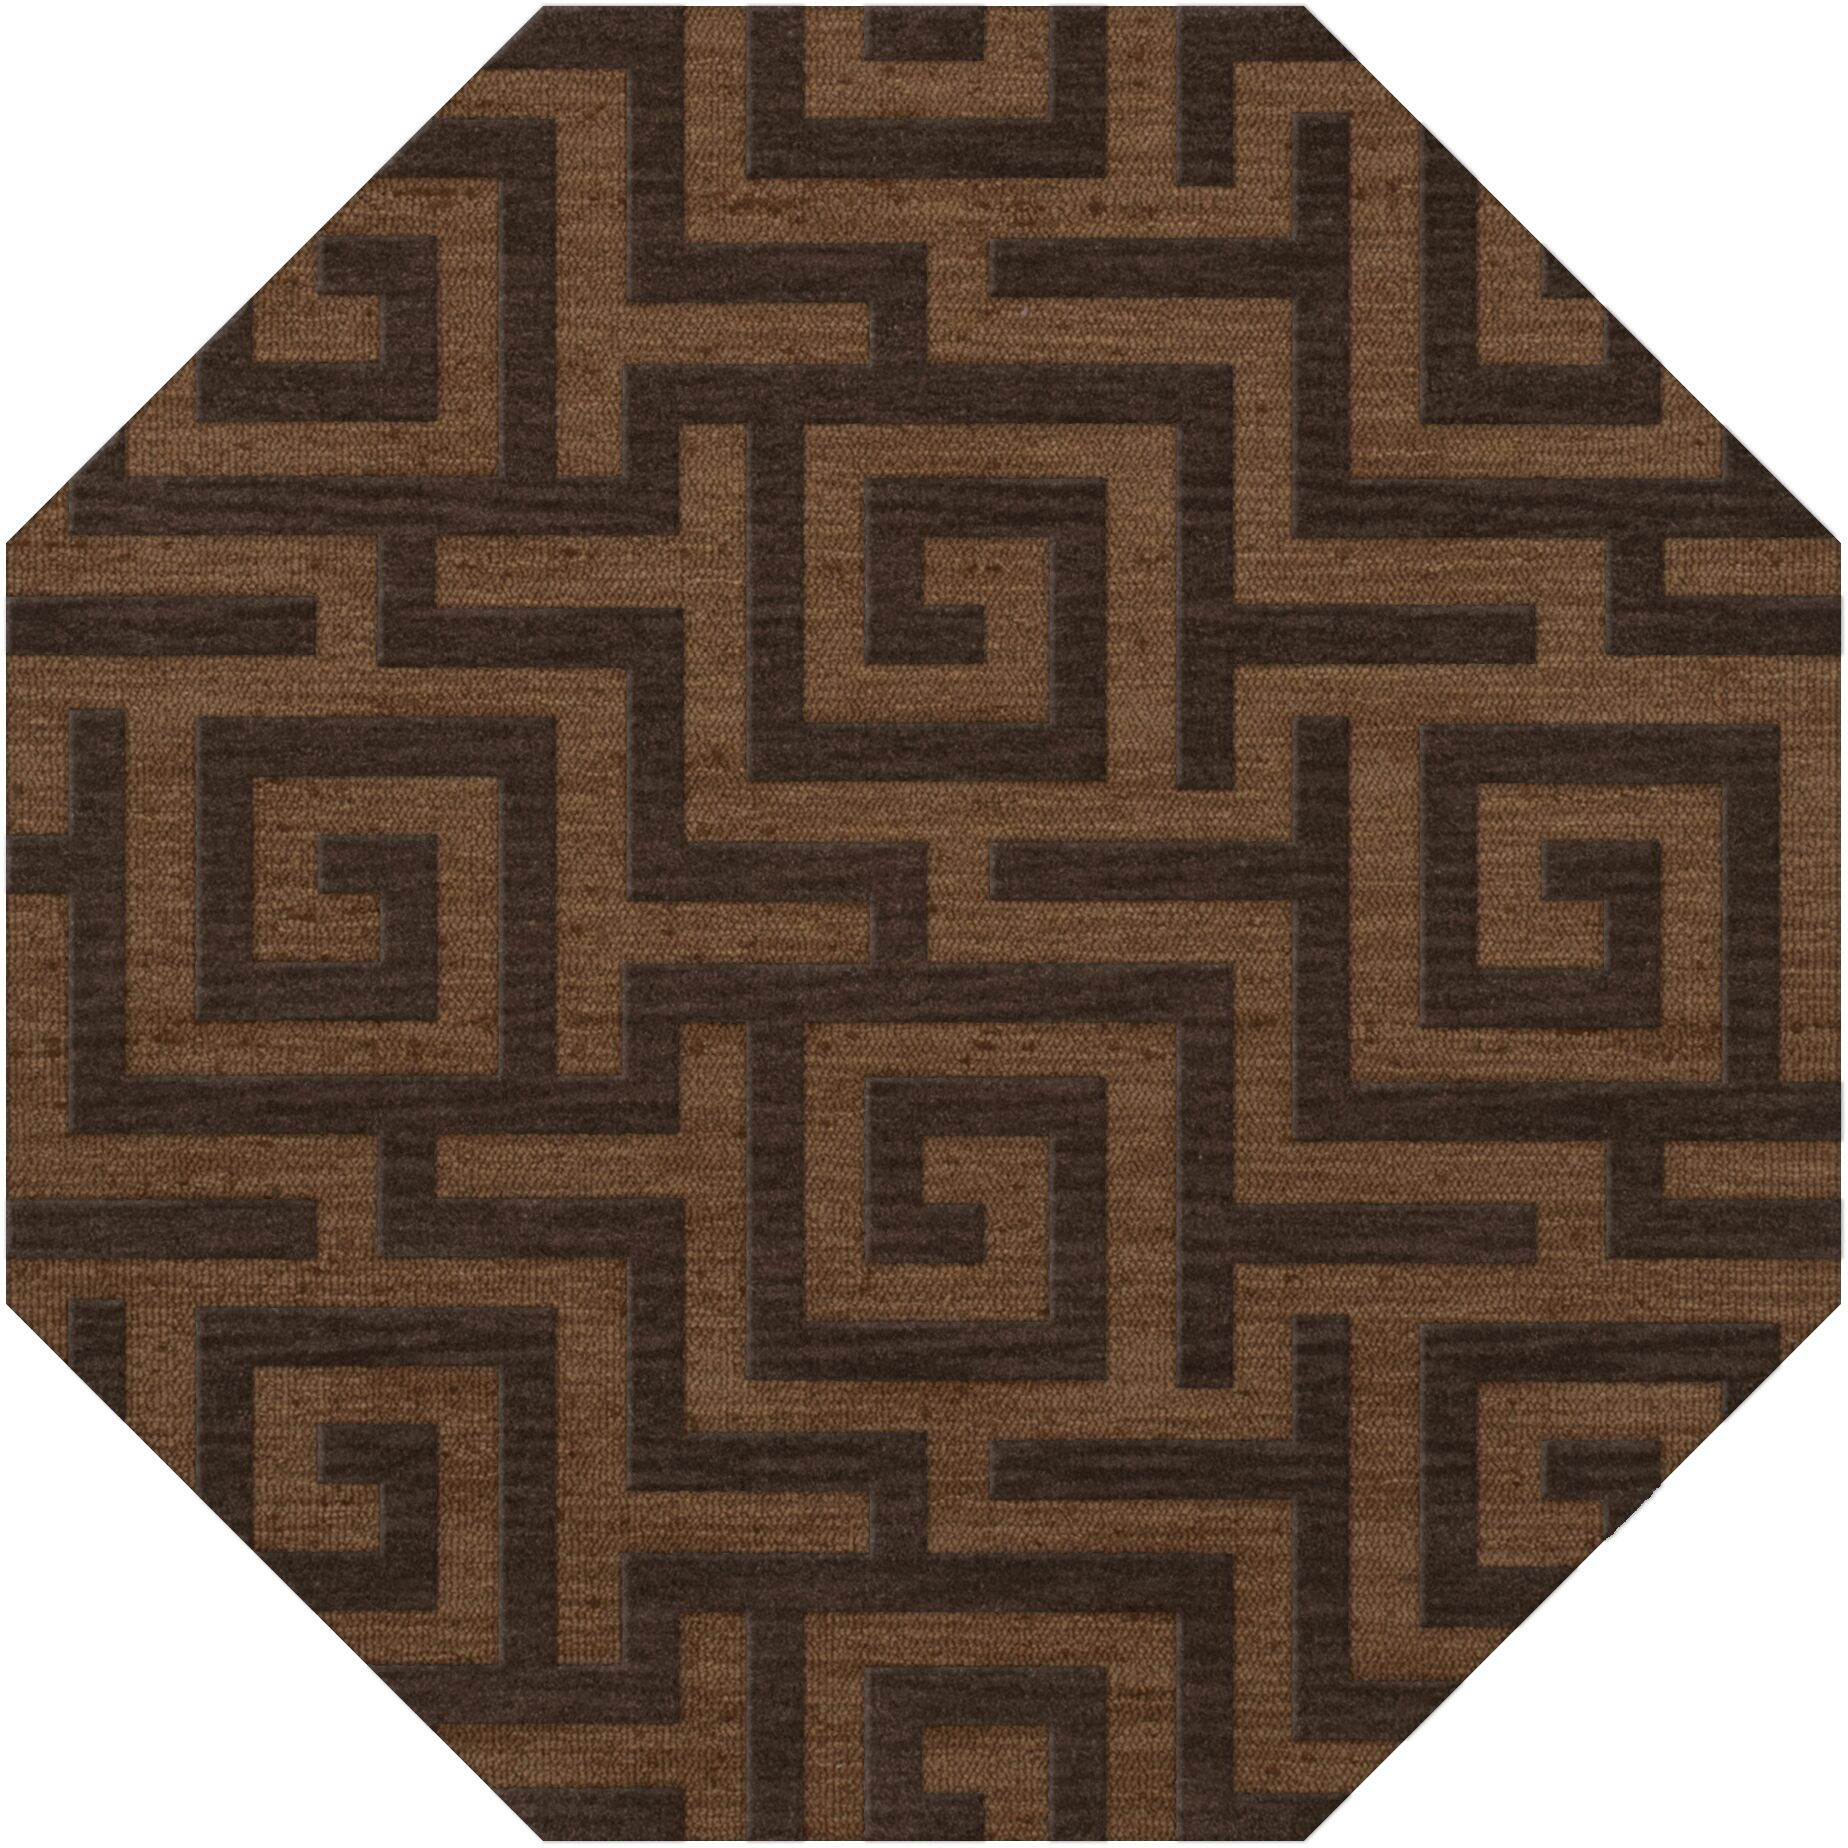 Dover Tufted Wool Caramel Area Rug Rug Size: Octagon 10'